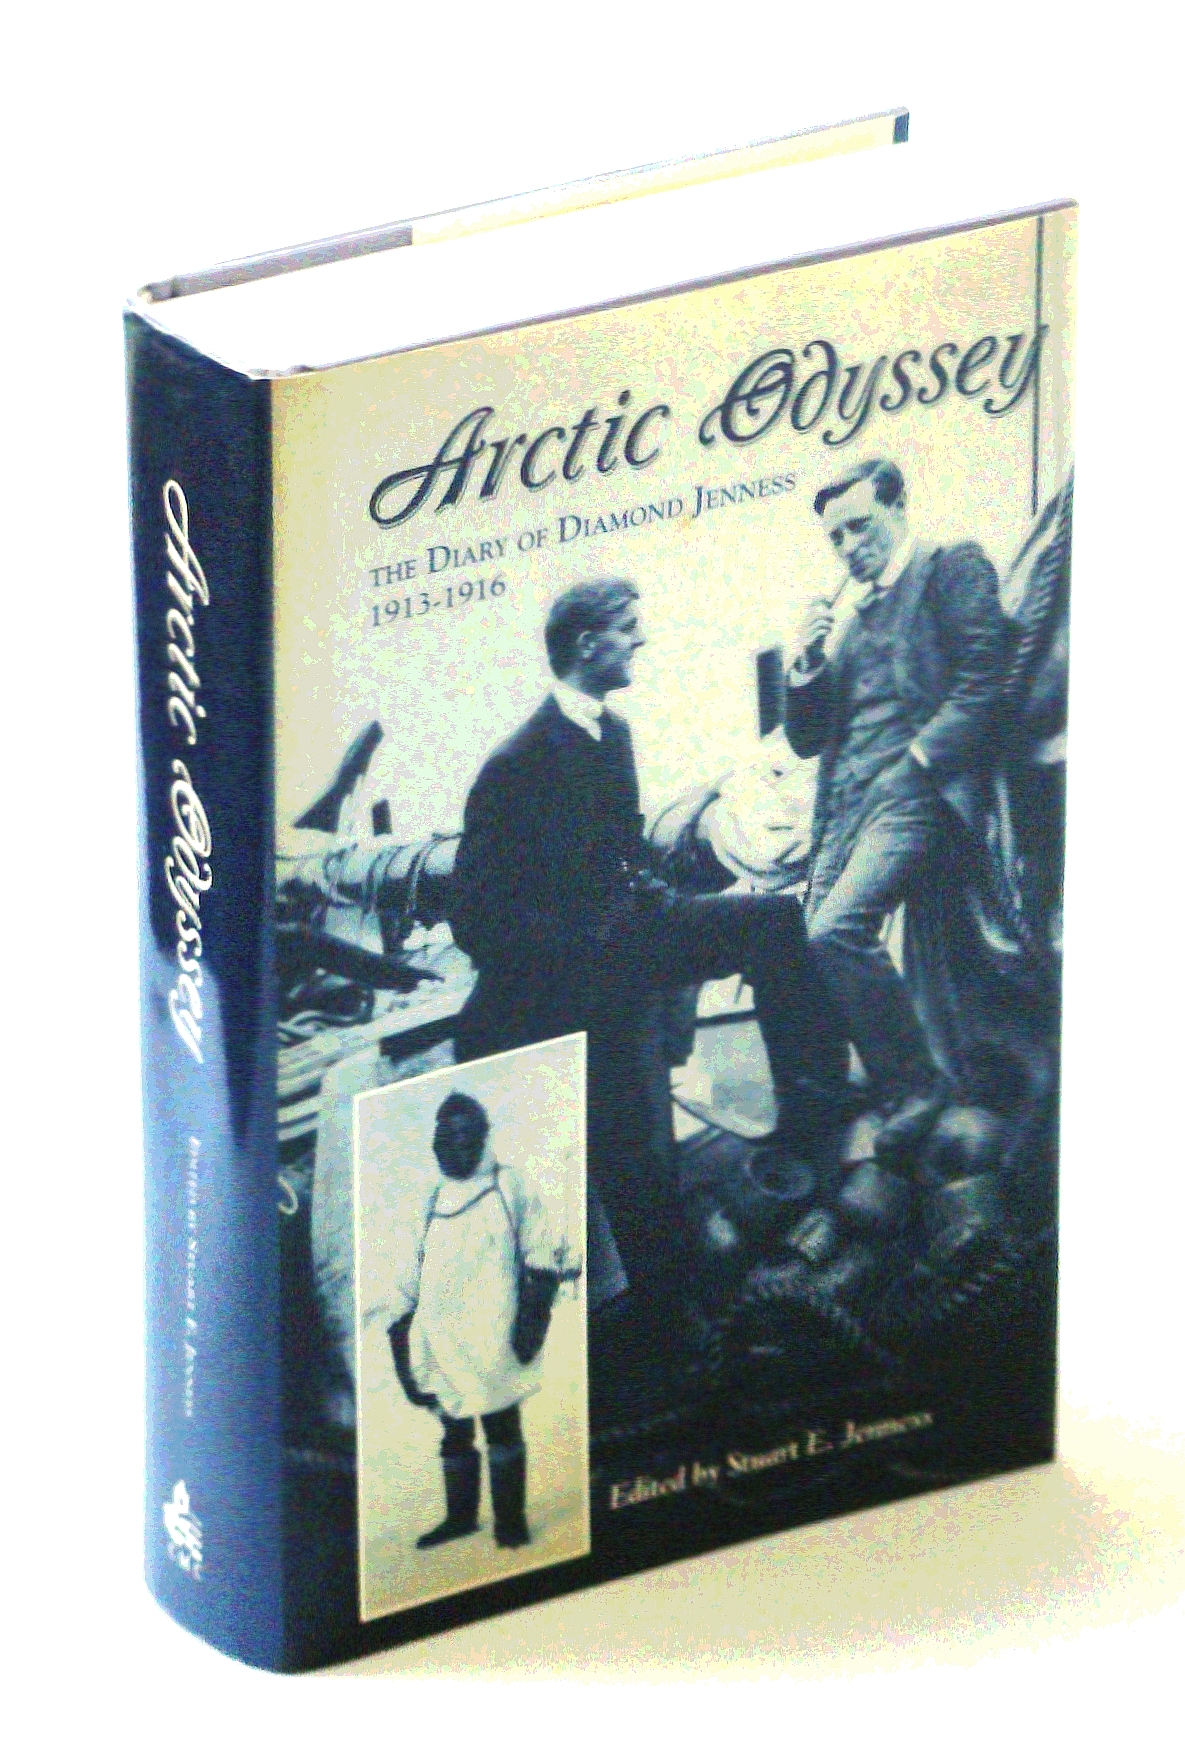 Image for Arctic Odyssey: The Diary of Diamond Jenness, 1913-1916